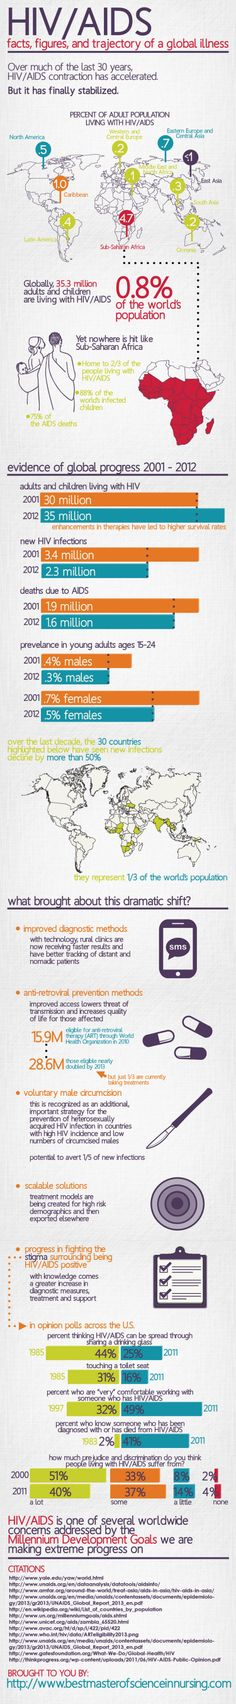 AIDS TODAY: THE FACTS, FIGURES, AND TRAJECTORY OF A GLOBAL ILLNESS Infographic